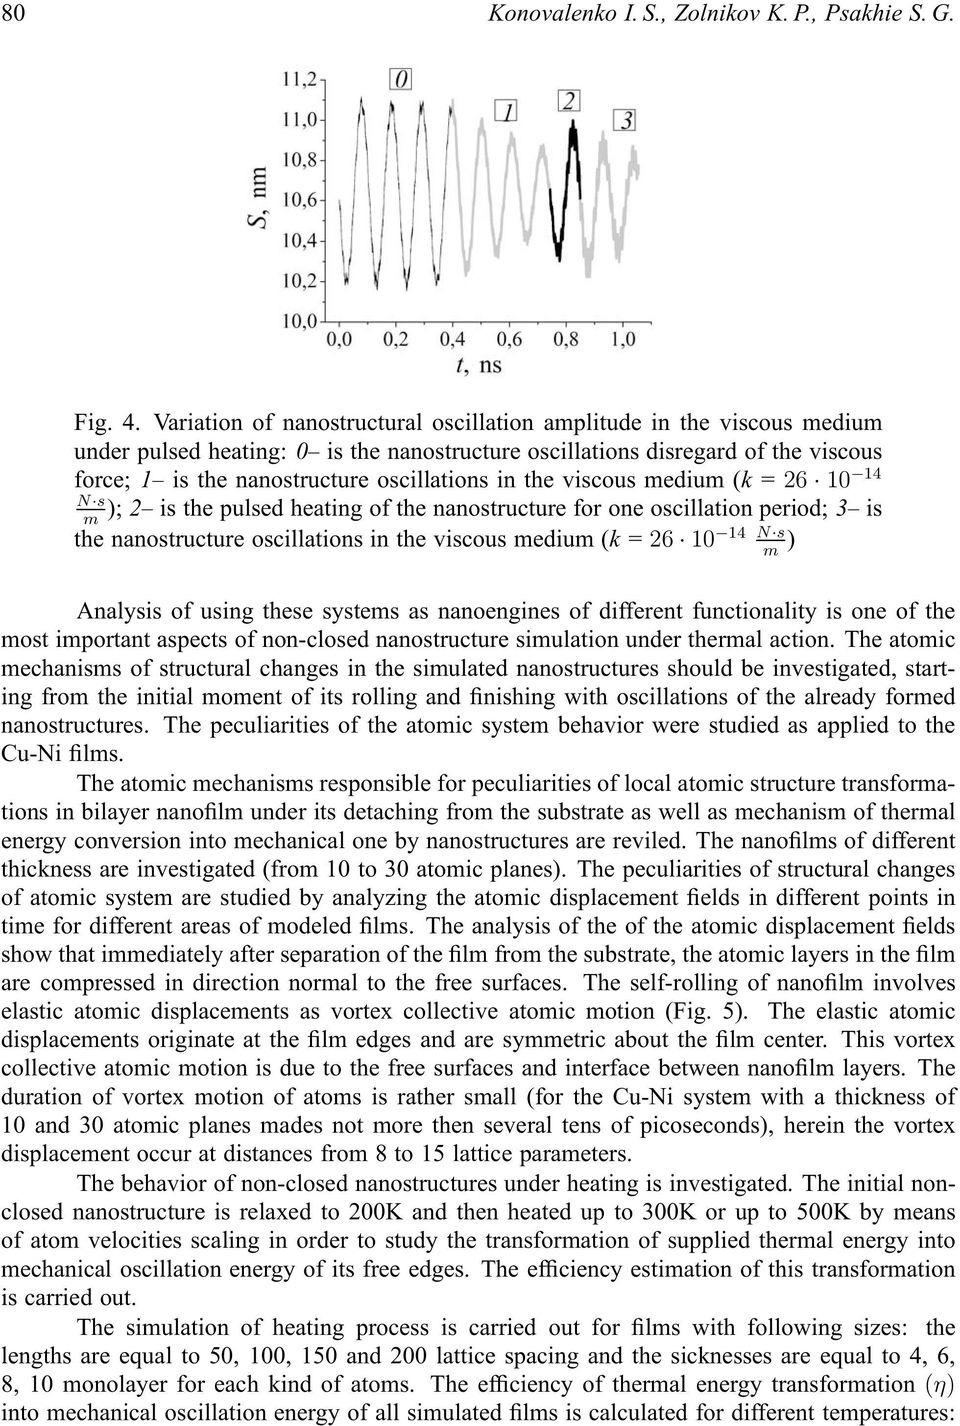 in the viscous medium (k = 26 10 14 N s); 2 is the pulsed heating of the nanostructure for one oscillation period; 3 is m 14 N s the nanostructure oscillations in the viscous medium (k = 26 10